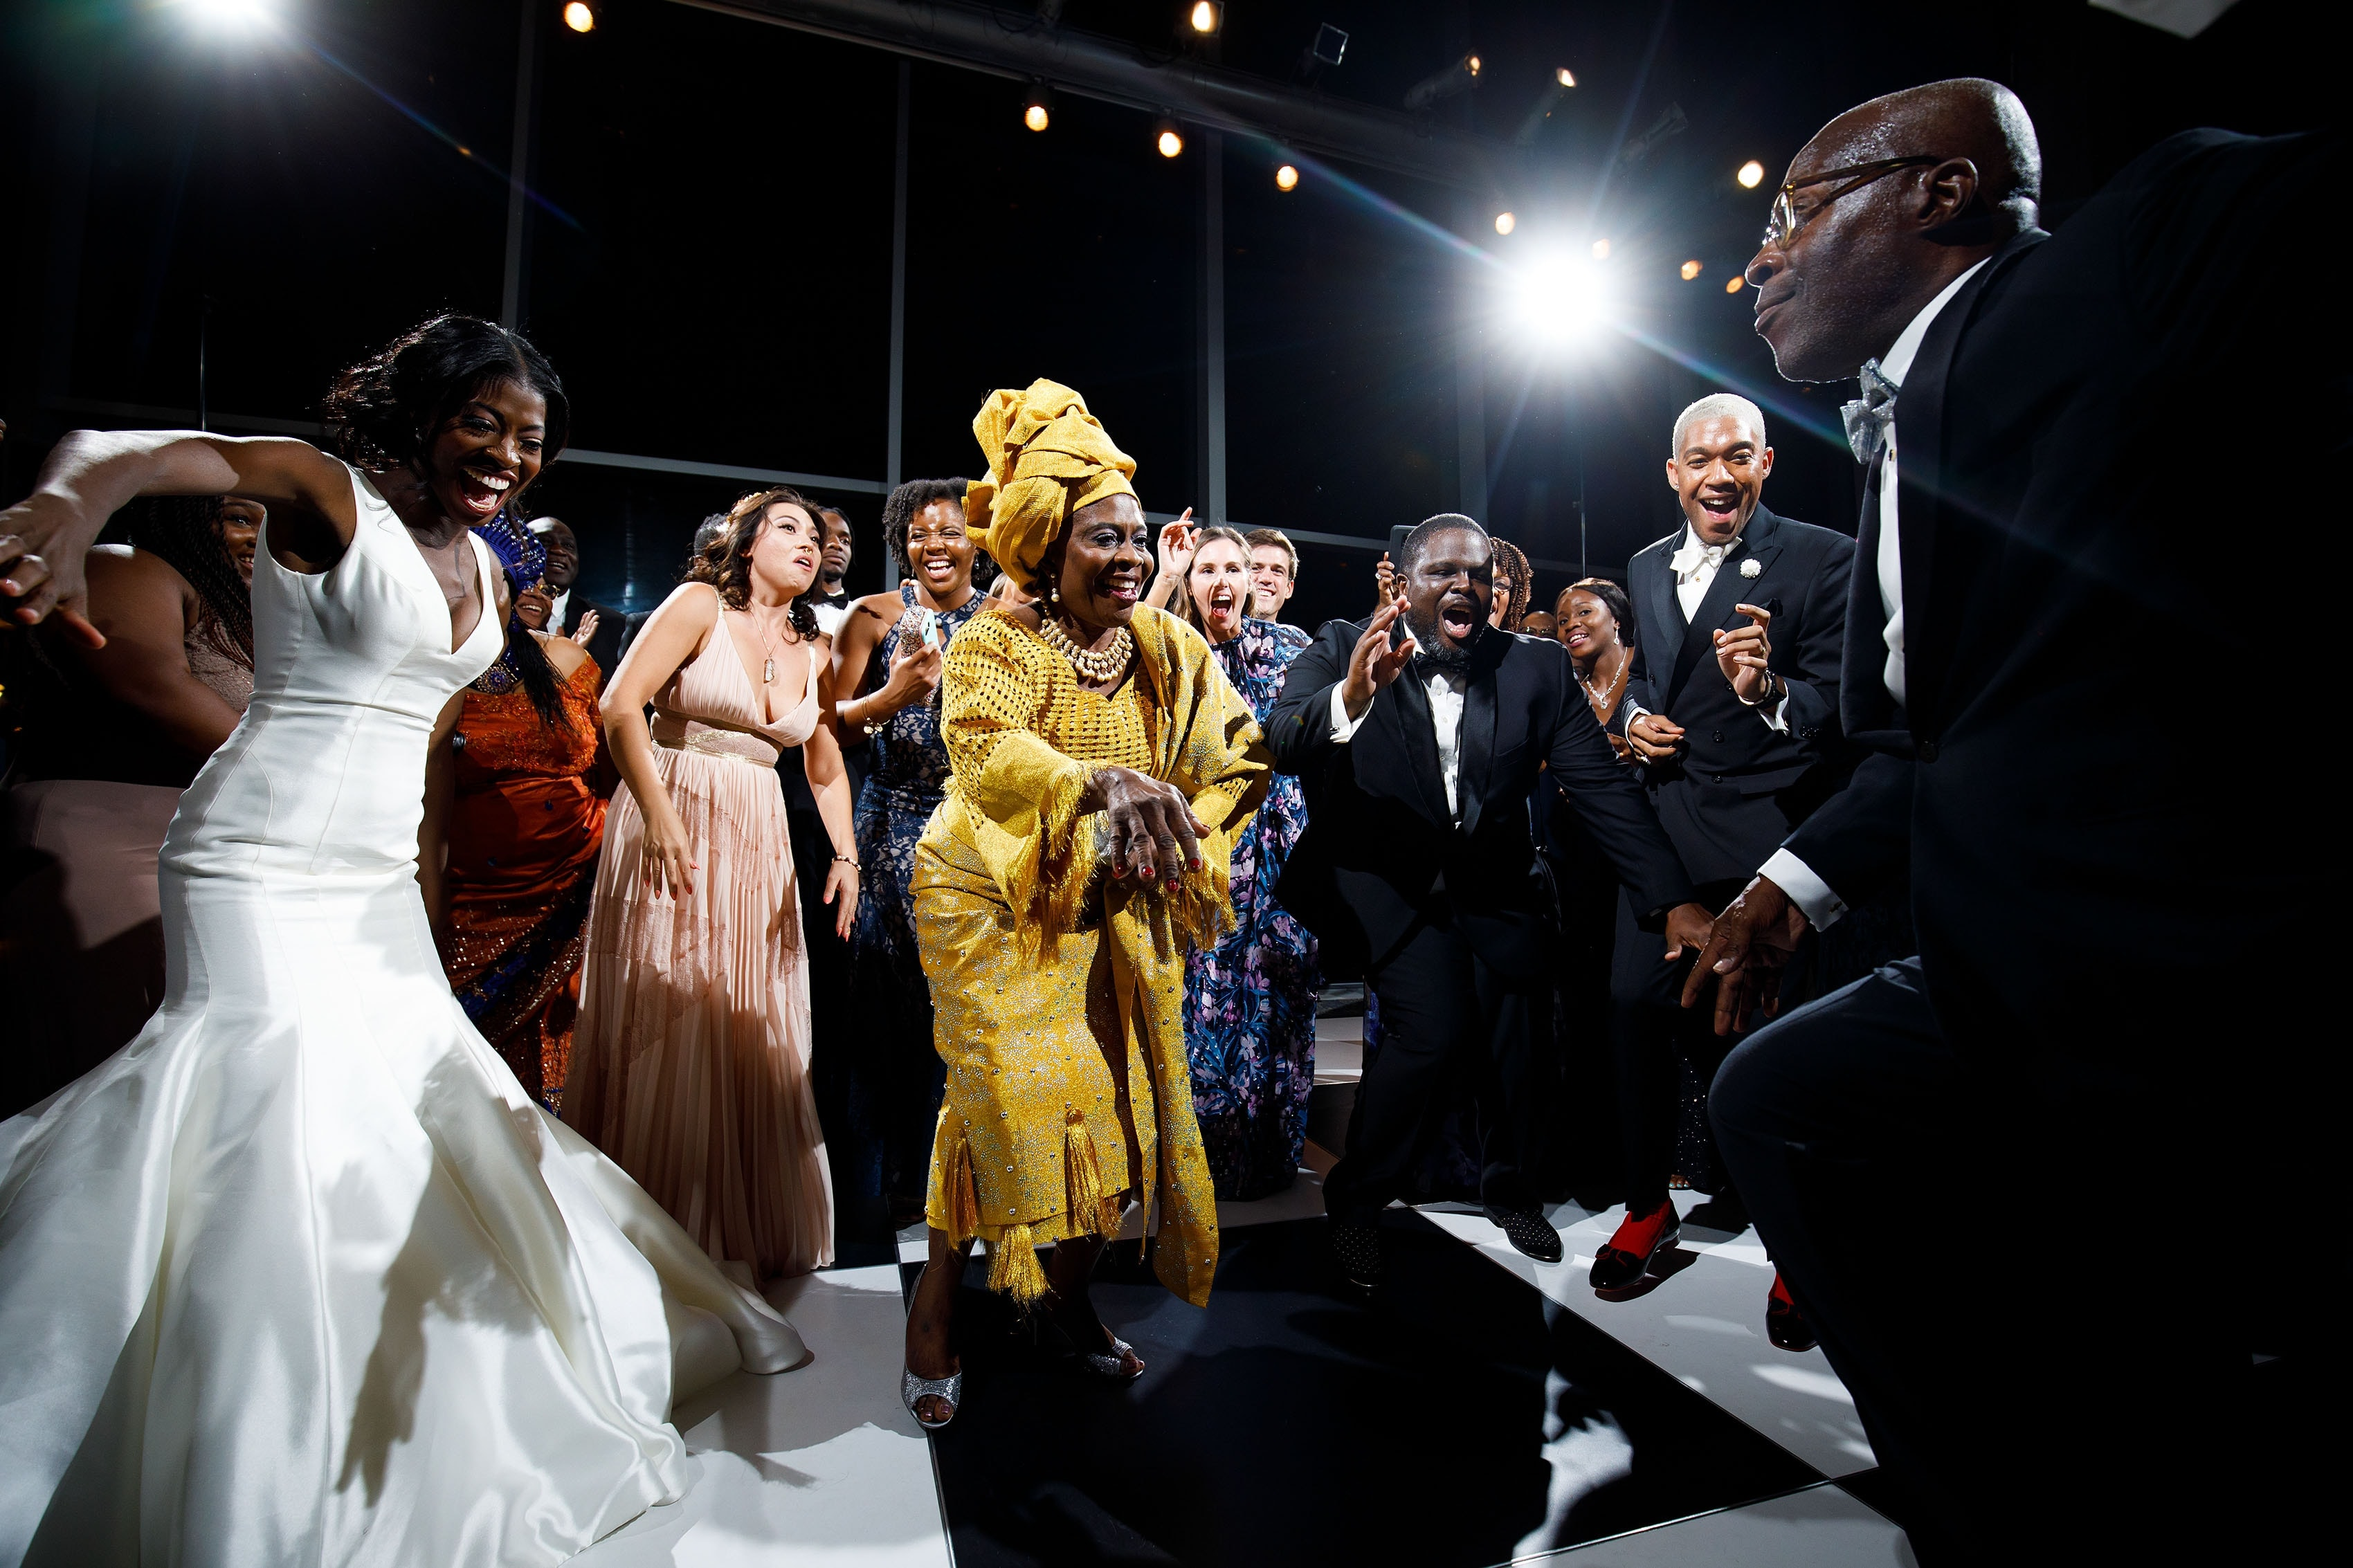 Guests dance during a wedding in the grand atrium at the Denver Museum of Nature and Science